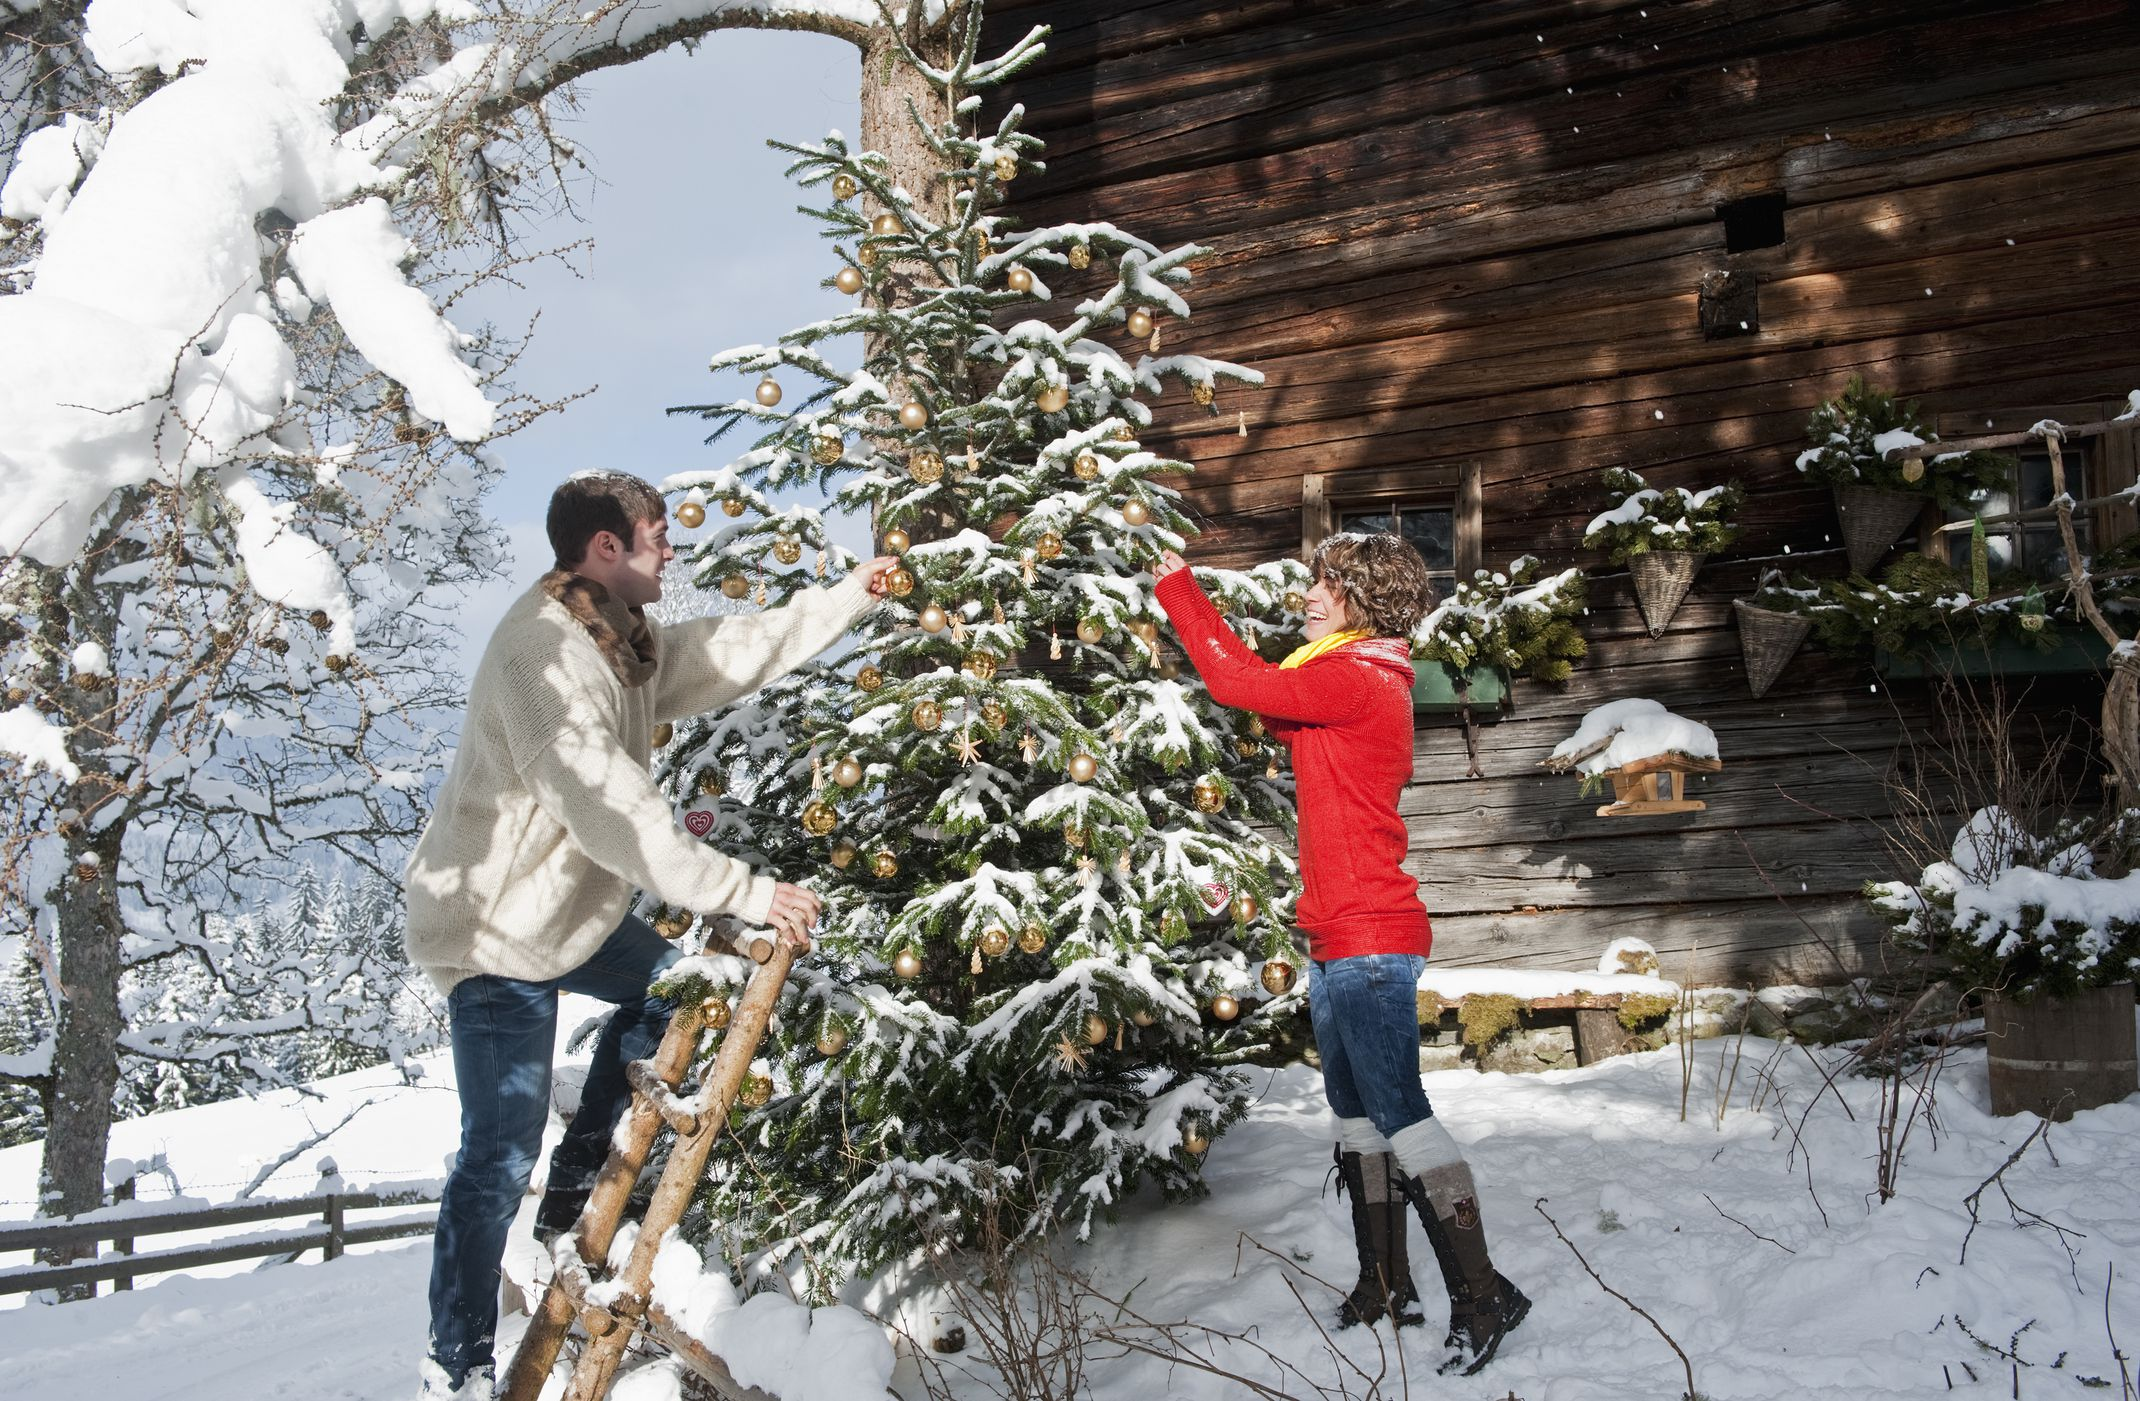 Couple with a ladder decorating an outdoor Christmas tree in a snowy landscape.